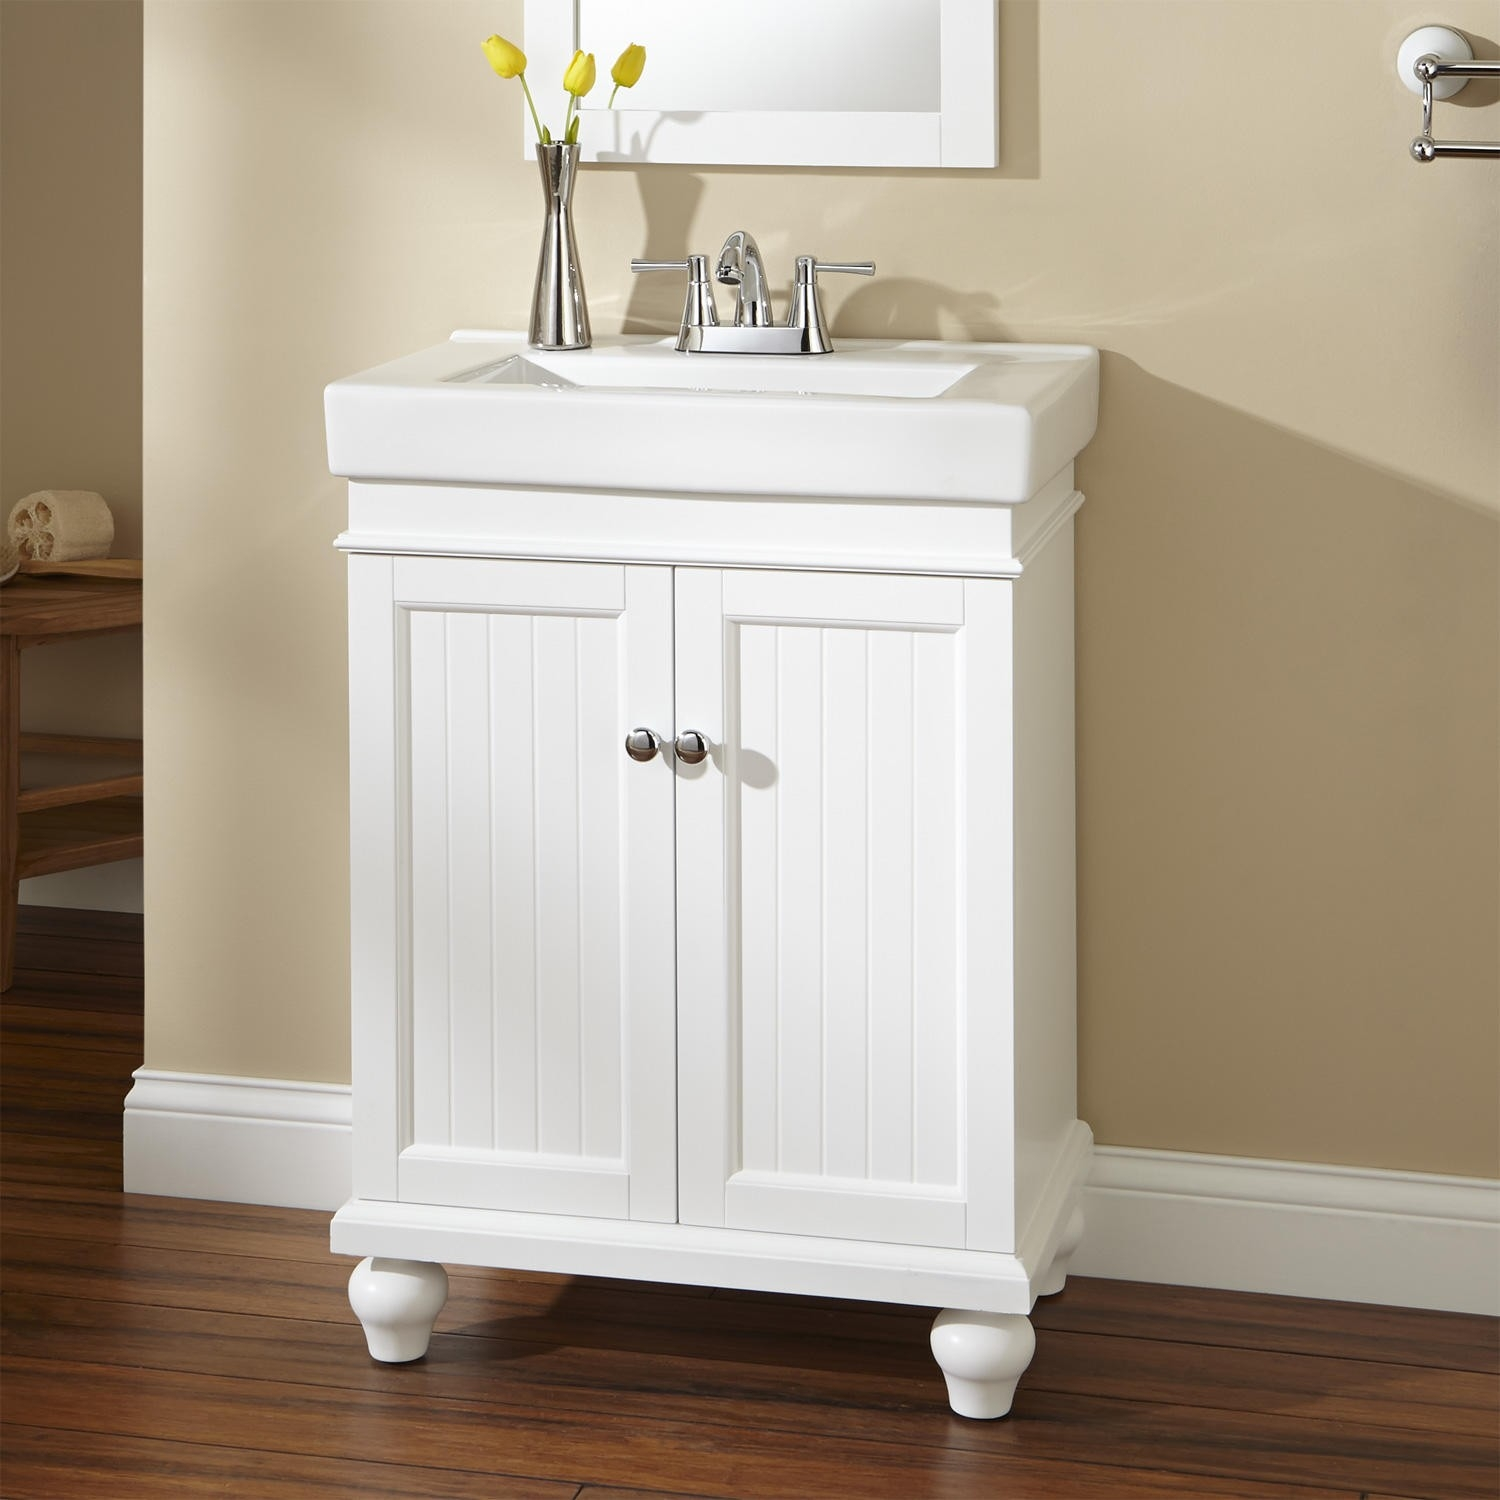 Pictures Of Bathrooms With White Vanities